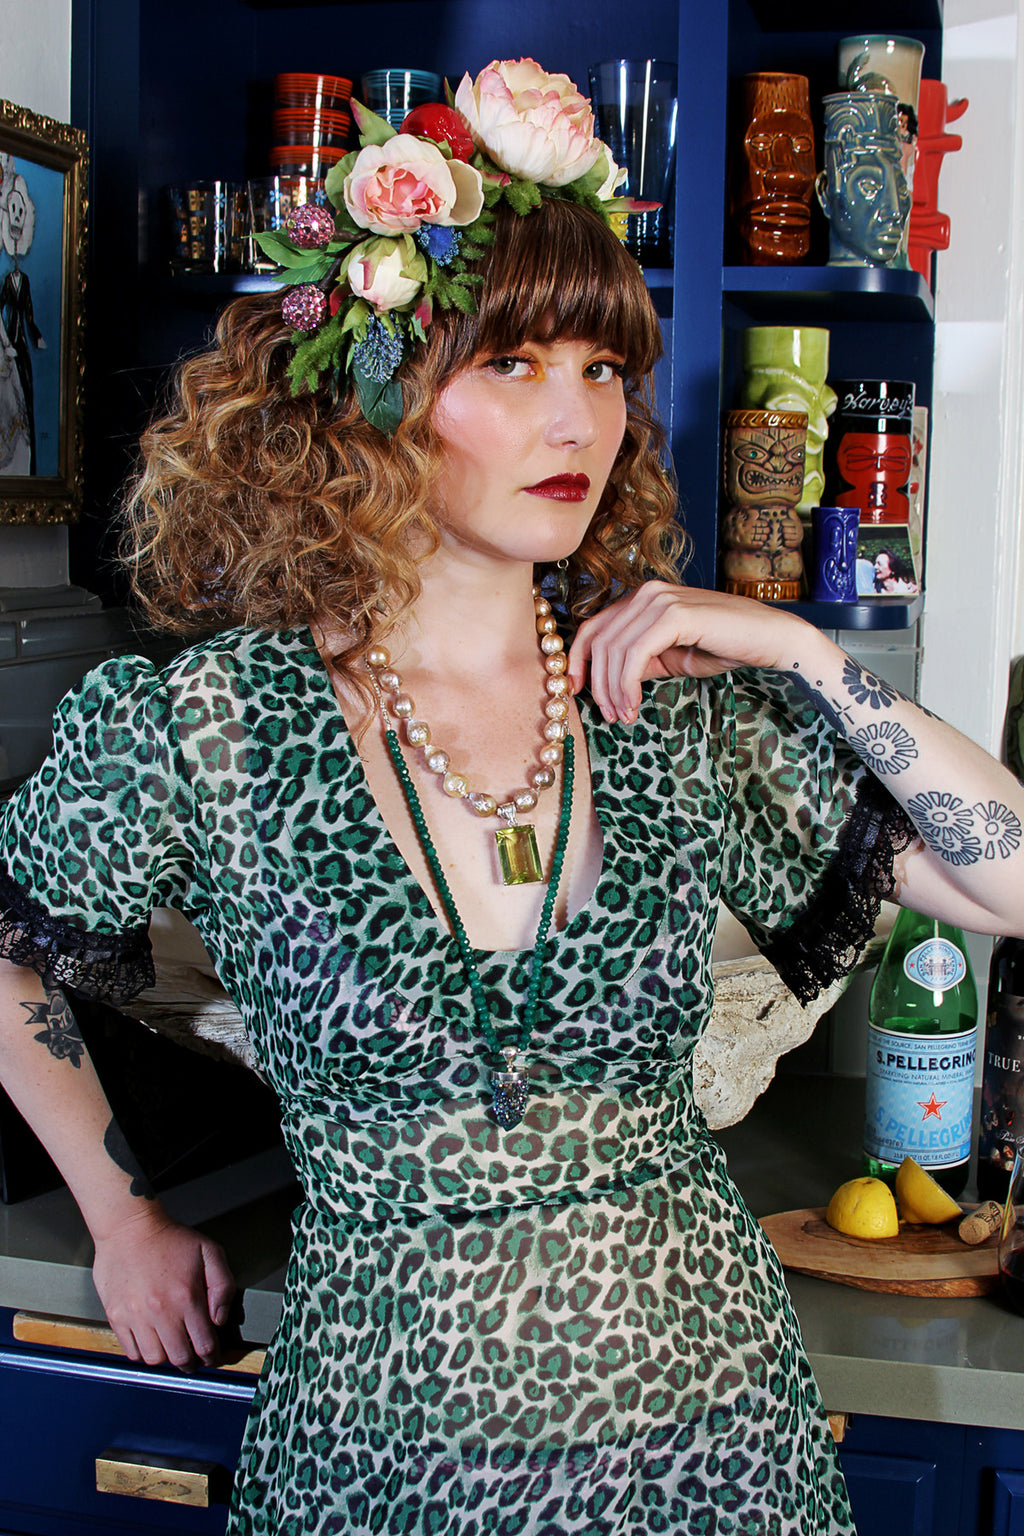 Vali Maxi Dress In Green Leopard ONE OF A KIND PC - shopjessicalouise.com